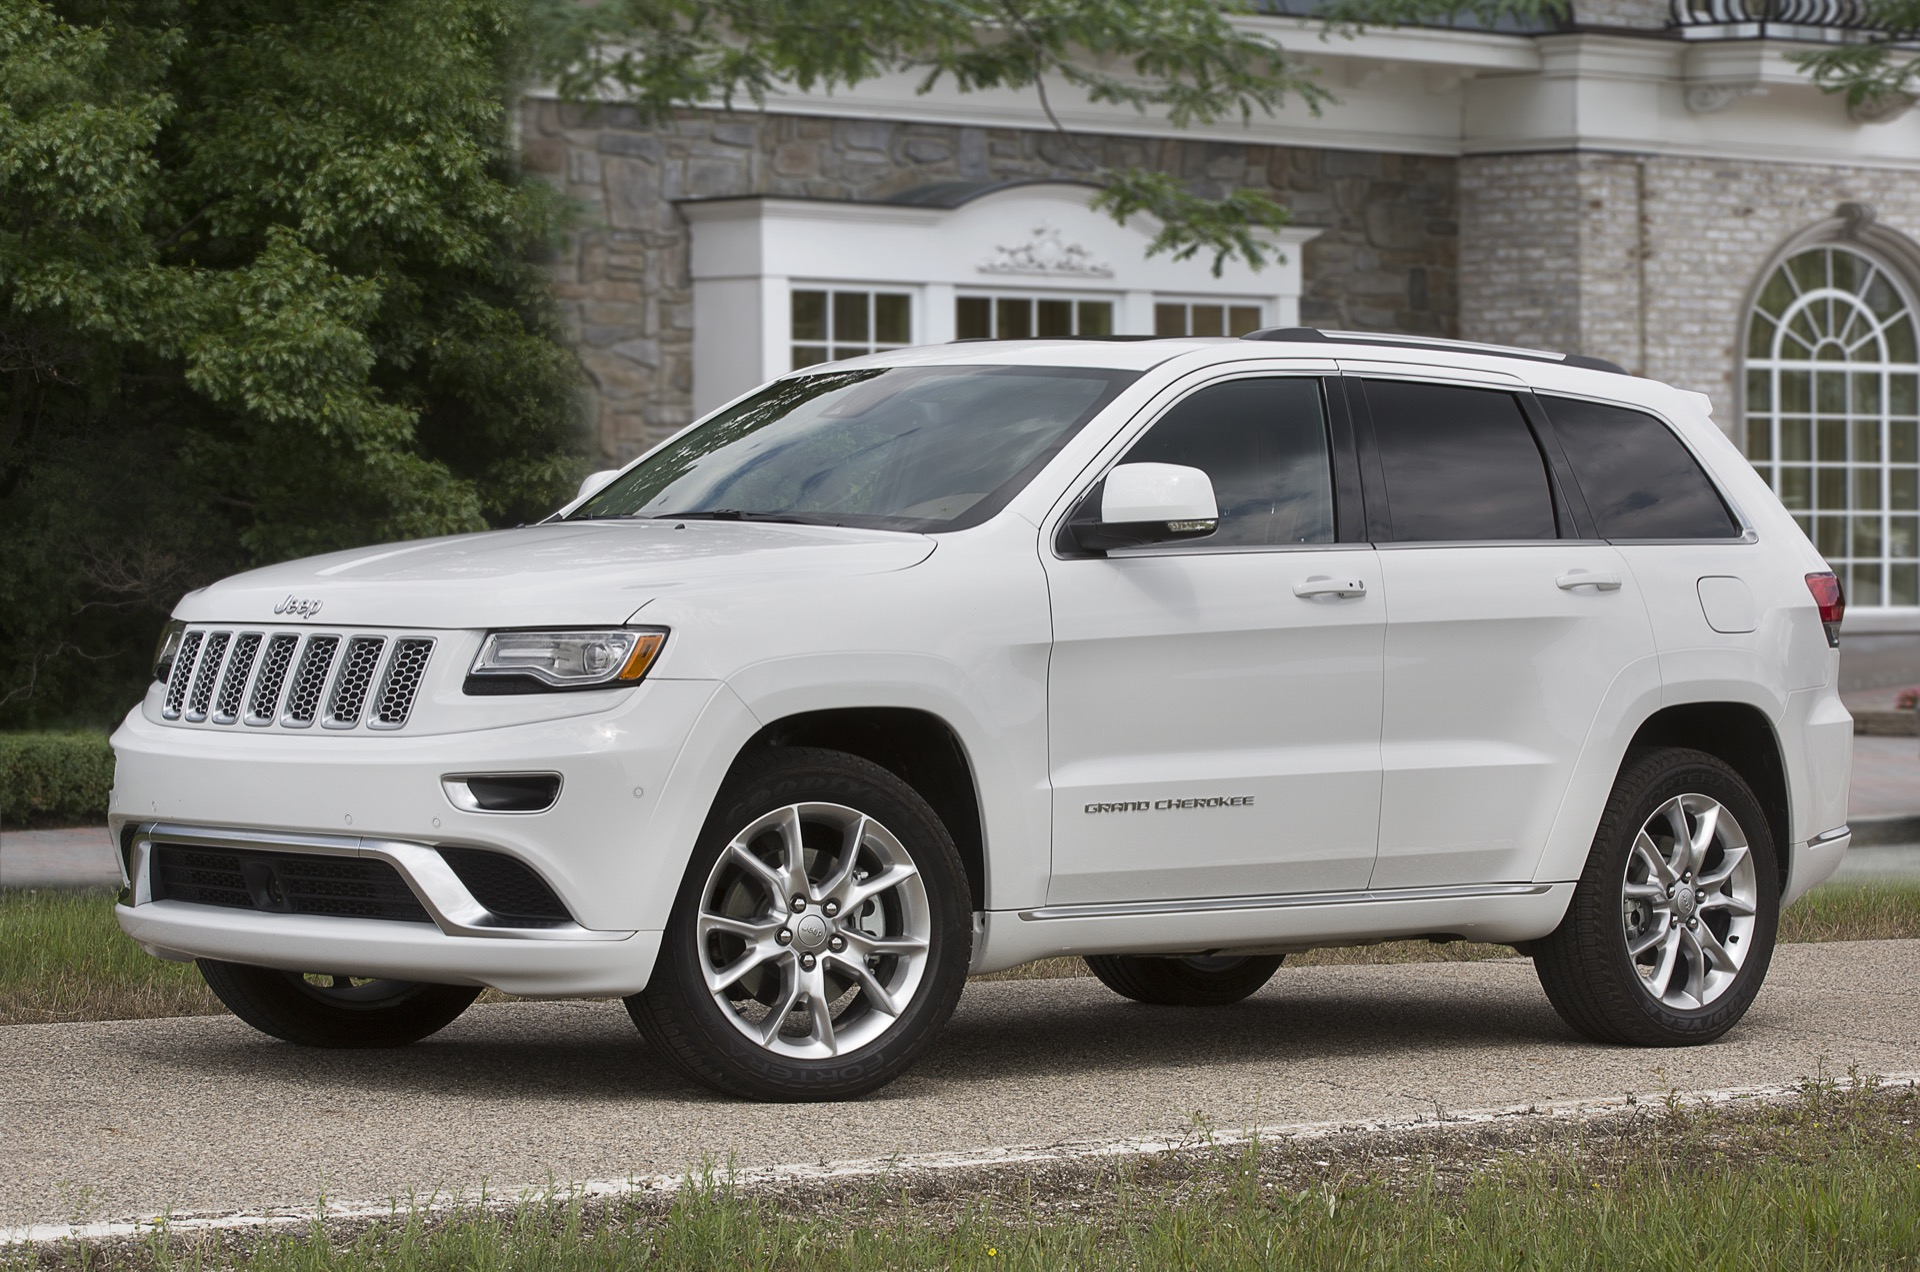 2016 Dodge Dart Durango Jeep Grand Cherokee Recalled For Fuel Leaks Wiper Woes